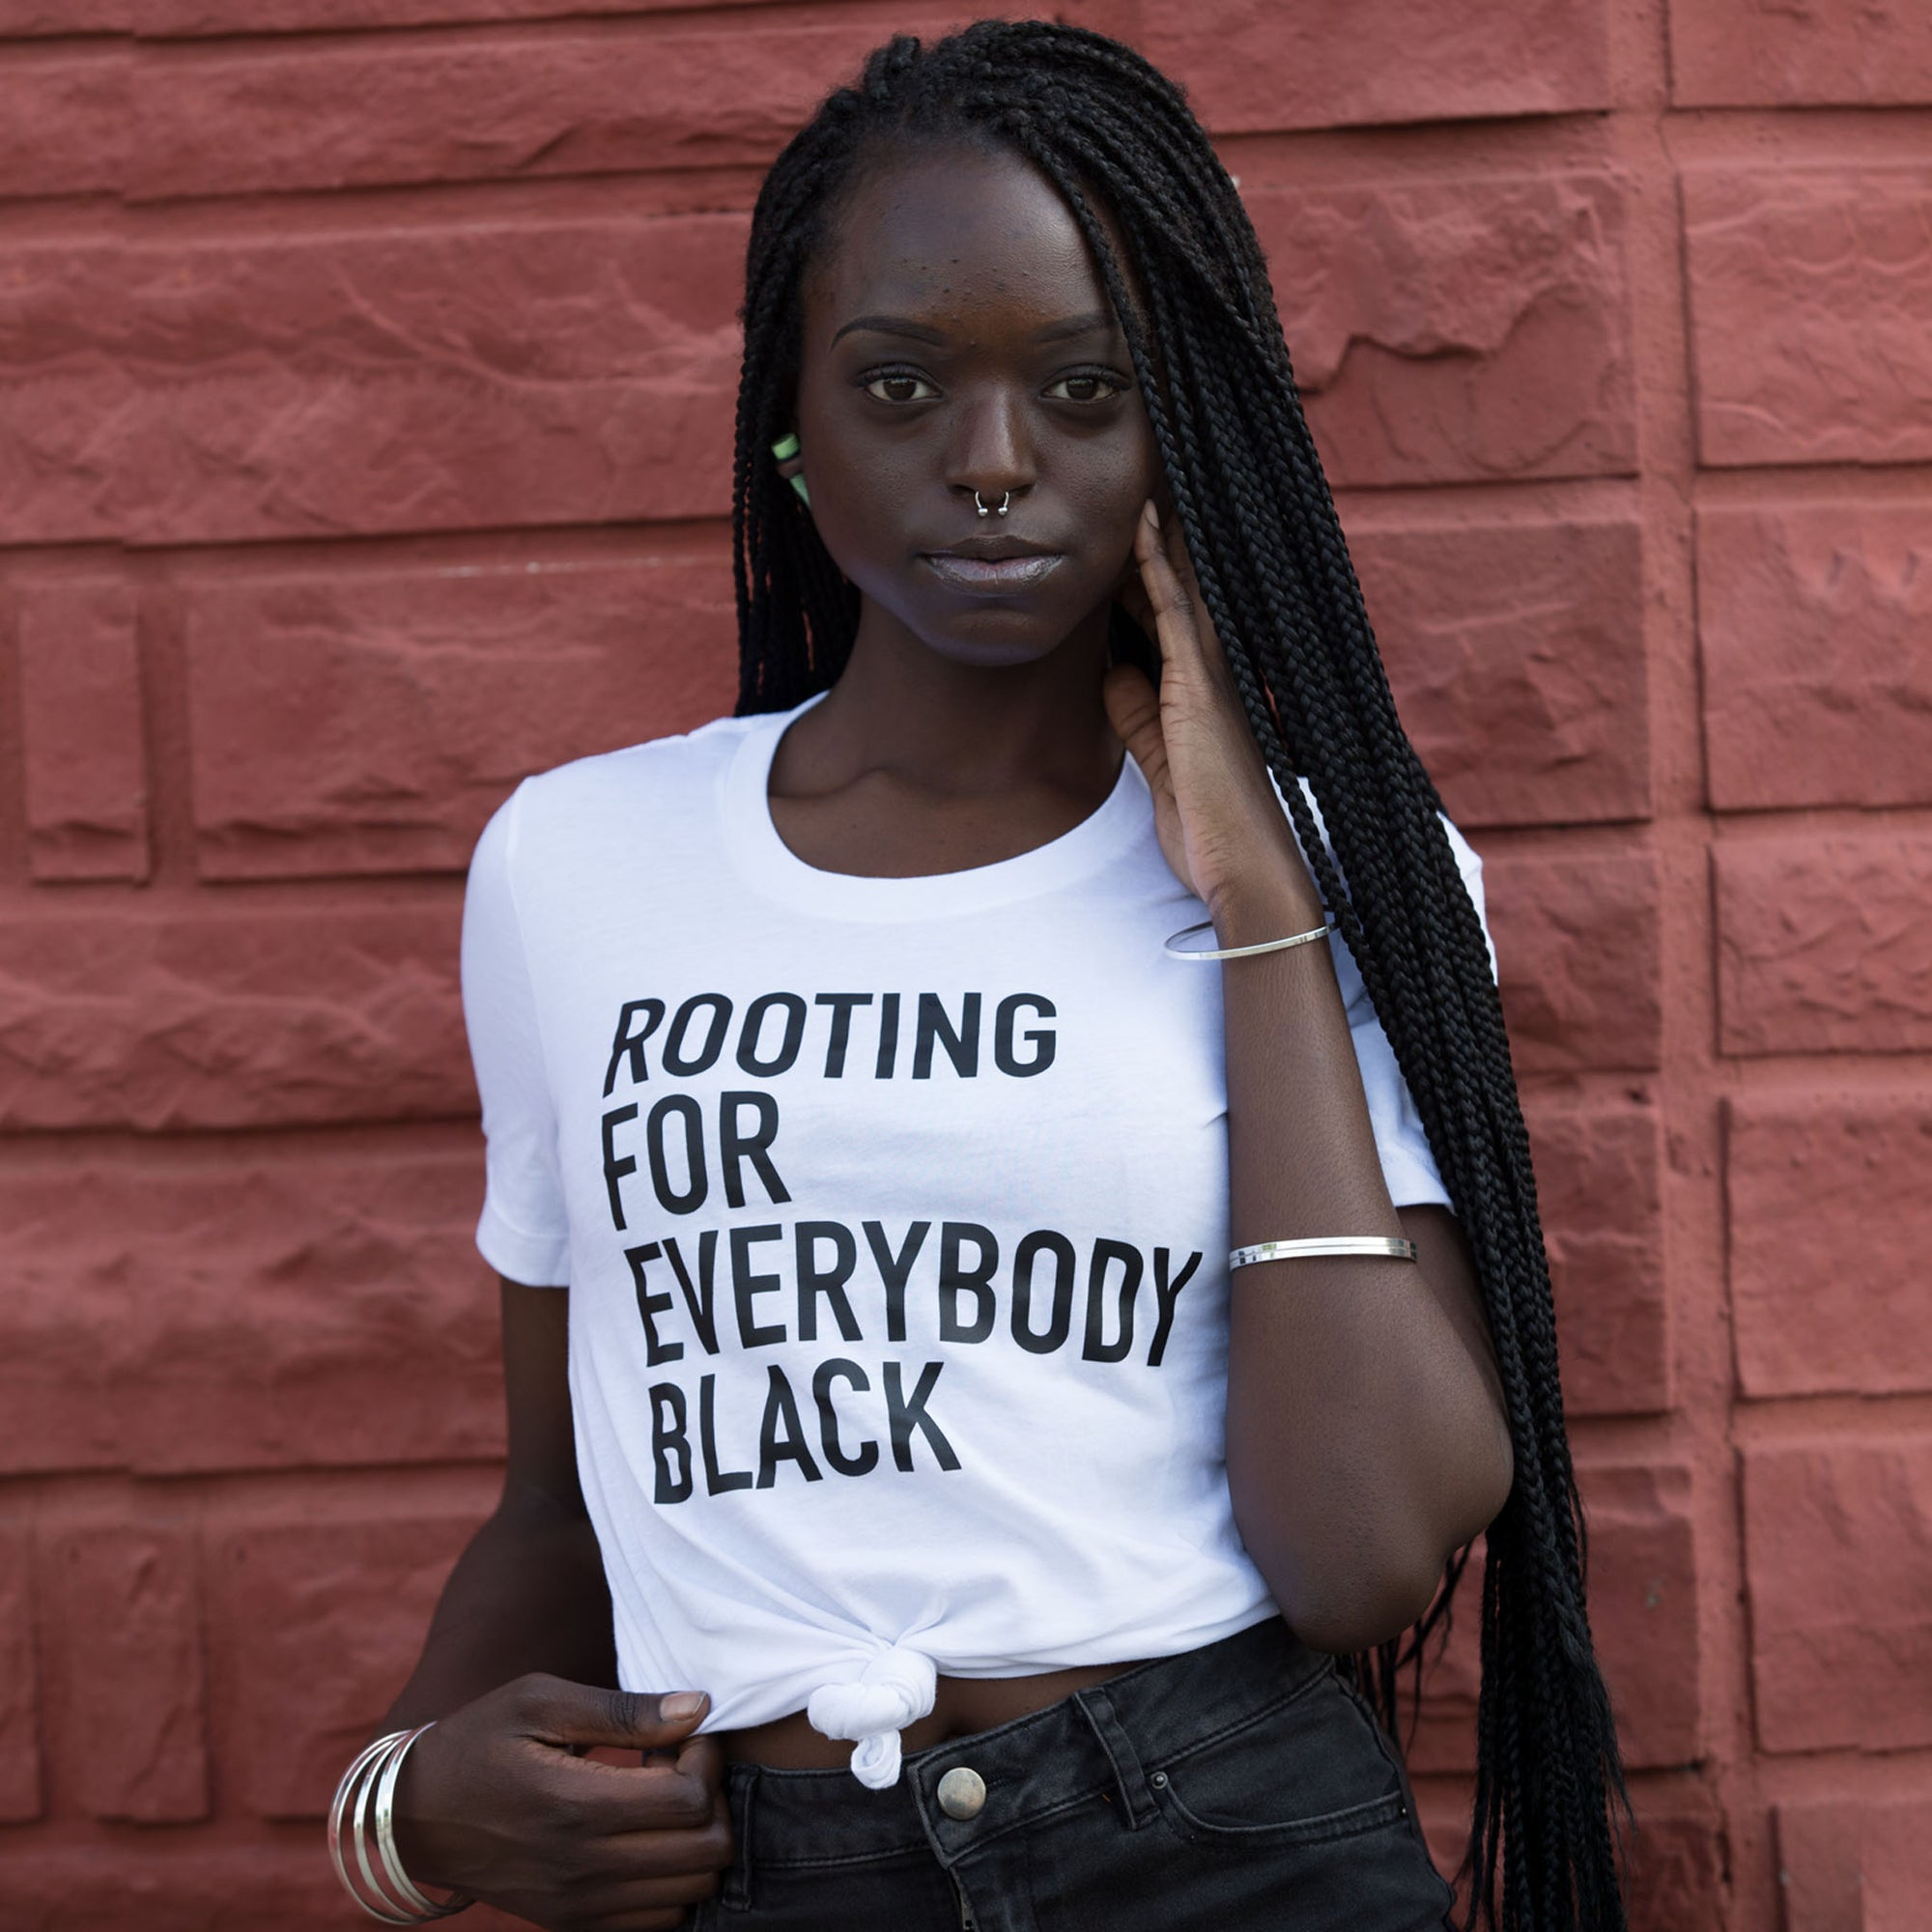 Rooting For Everybody Black Unisex T-Shirt - The Carter Brand - Black By Popular Demand - Rooting For Everybody Black - Black Pride Apparel